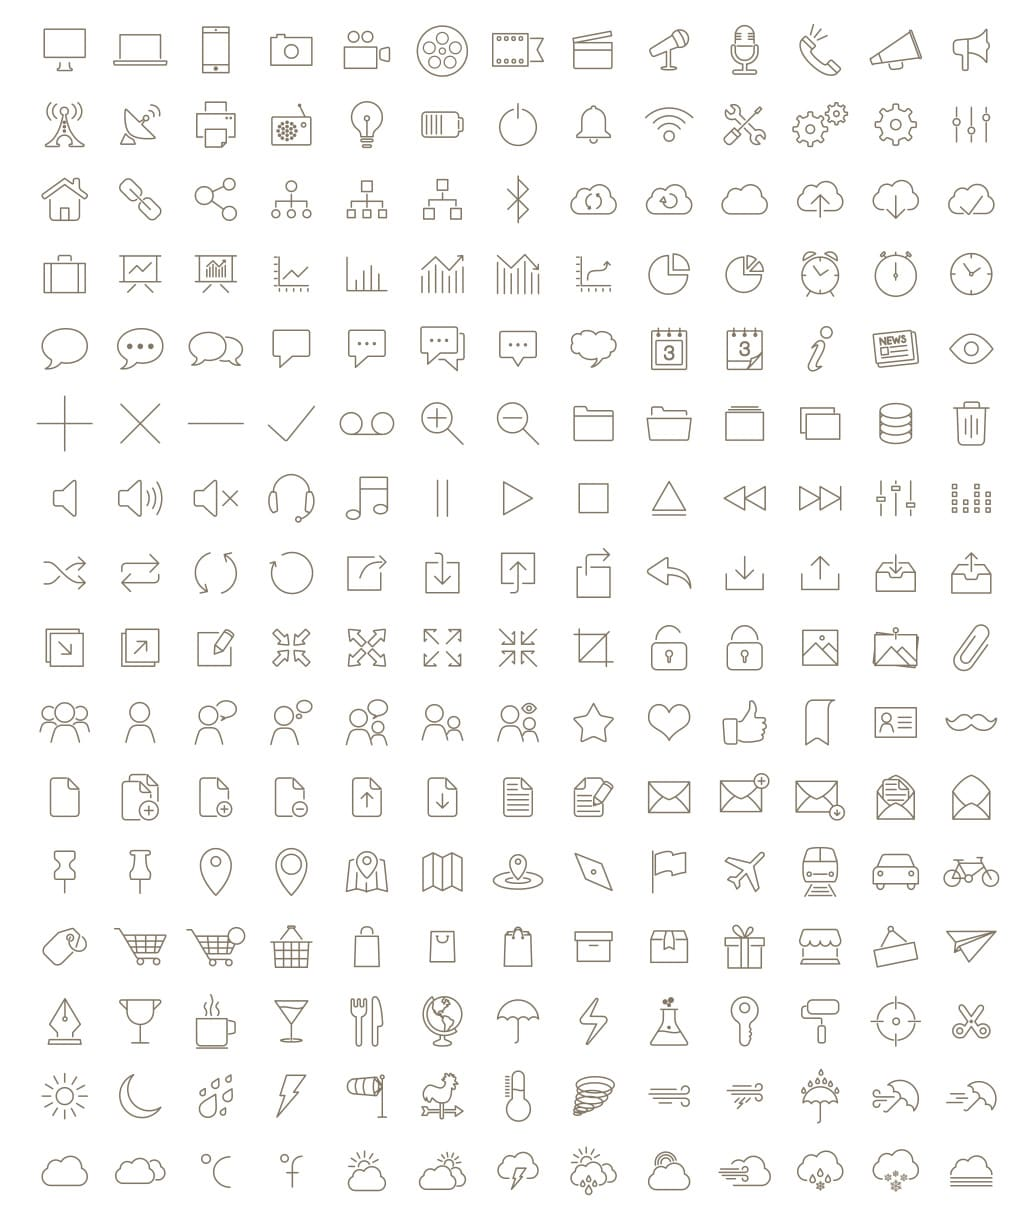 outline icon free font